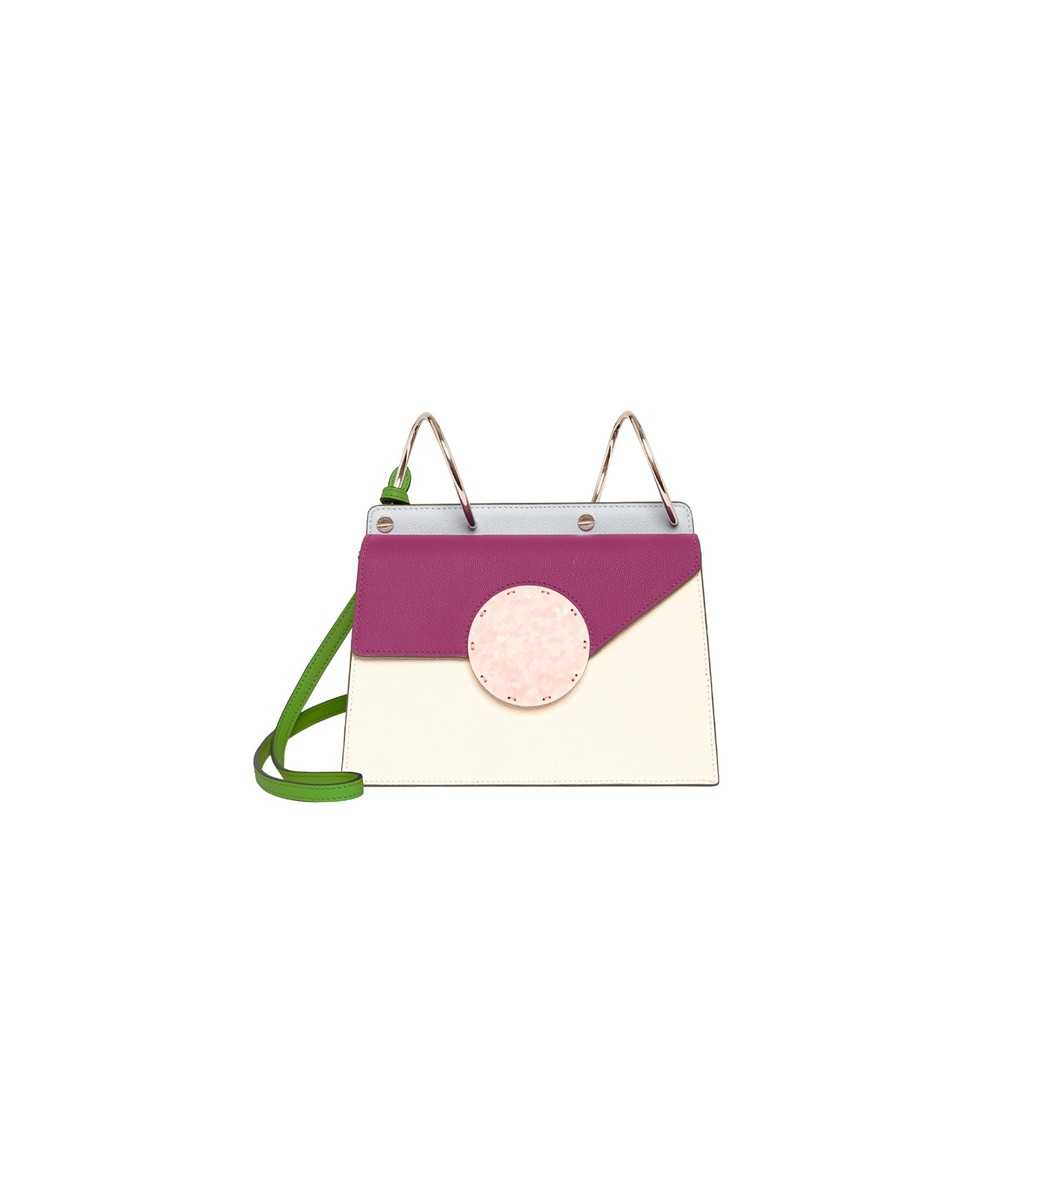 Phoebe Bis Bag In Cotton/Magenta